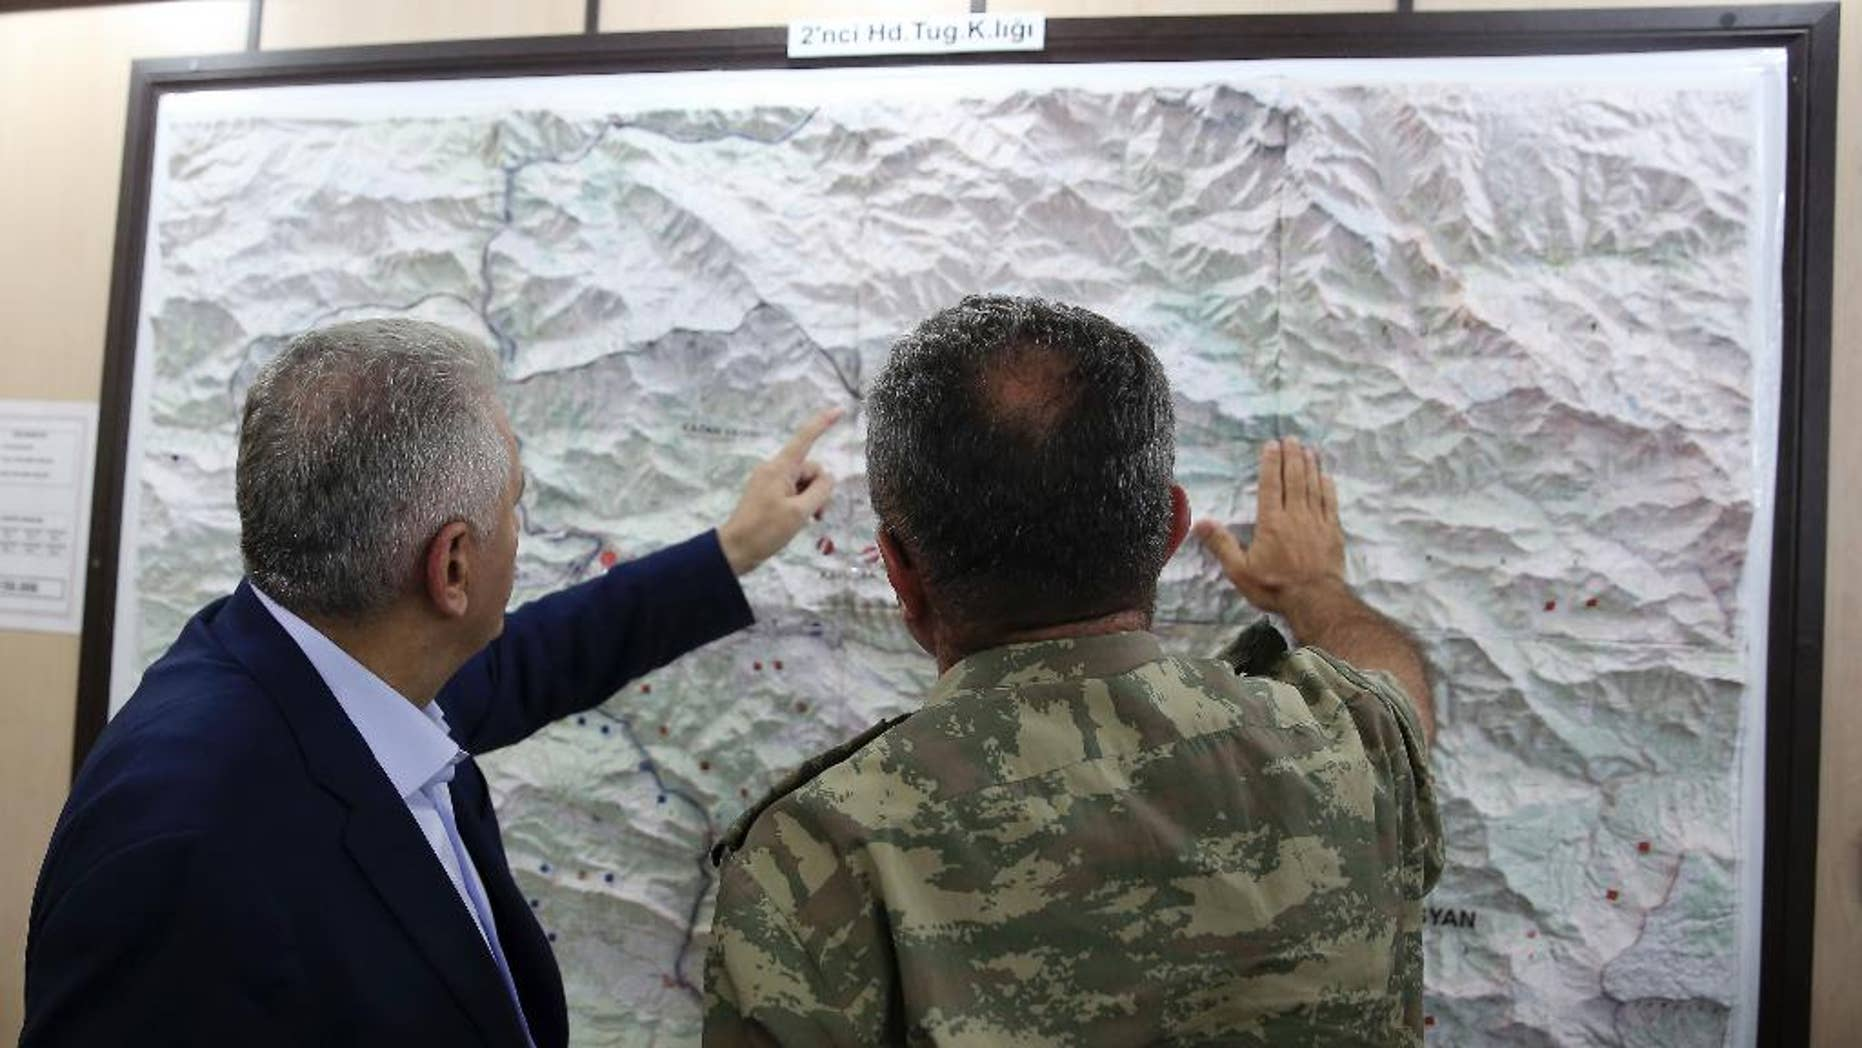 Turkey's Prime Minister Binali Yildirim, left, examining a Turkey-Iraq border map with an army commander Sept. 5.